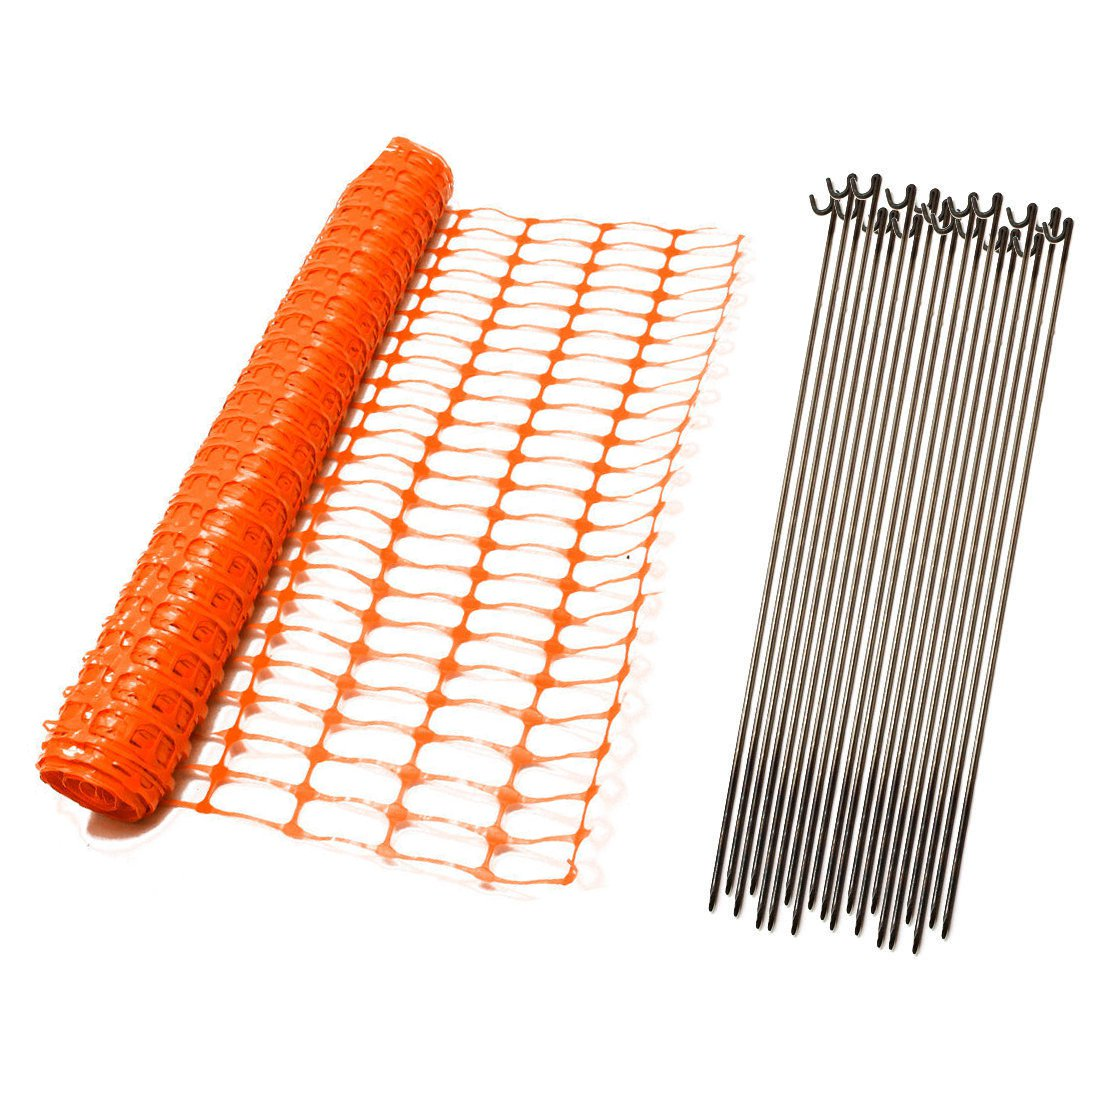 1m x 50m Orange Mesh Safety Barrier Fencing & 10 Fencing Pins